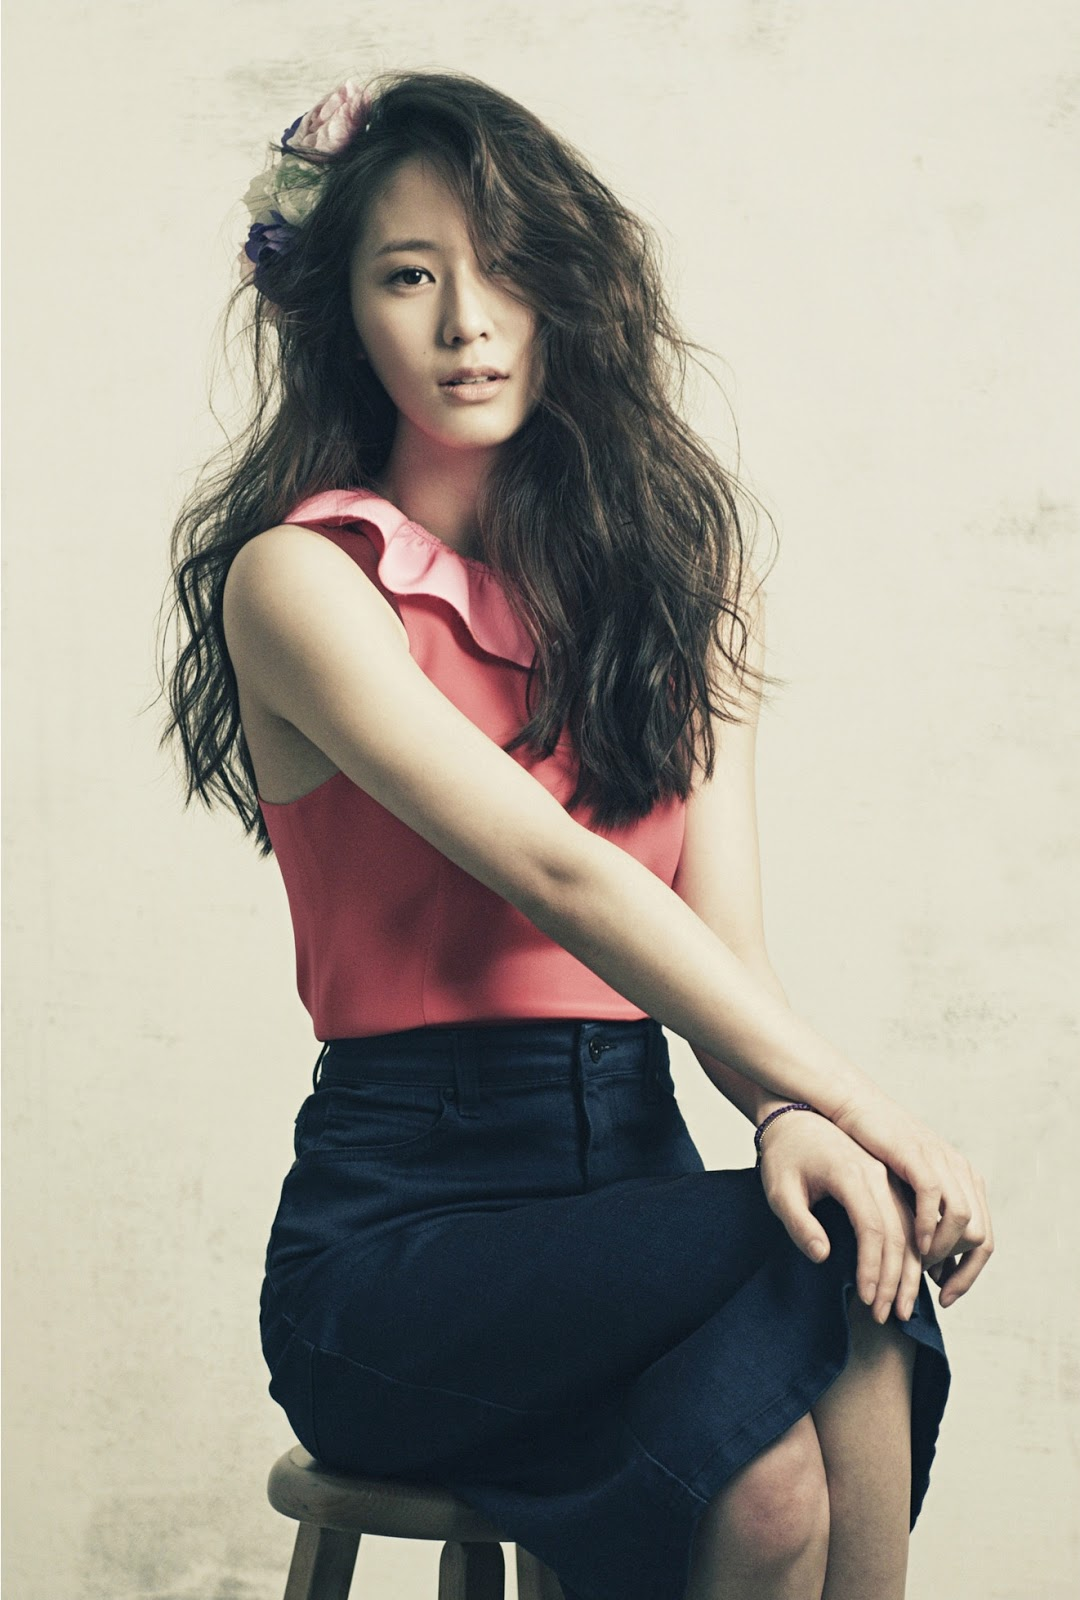 fx Krystal Sulli High Cut Pictures F(x) Krystal 2013